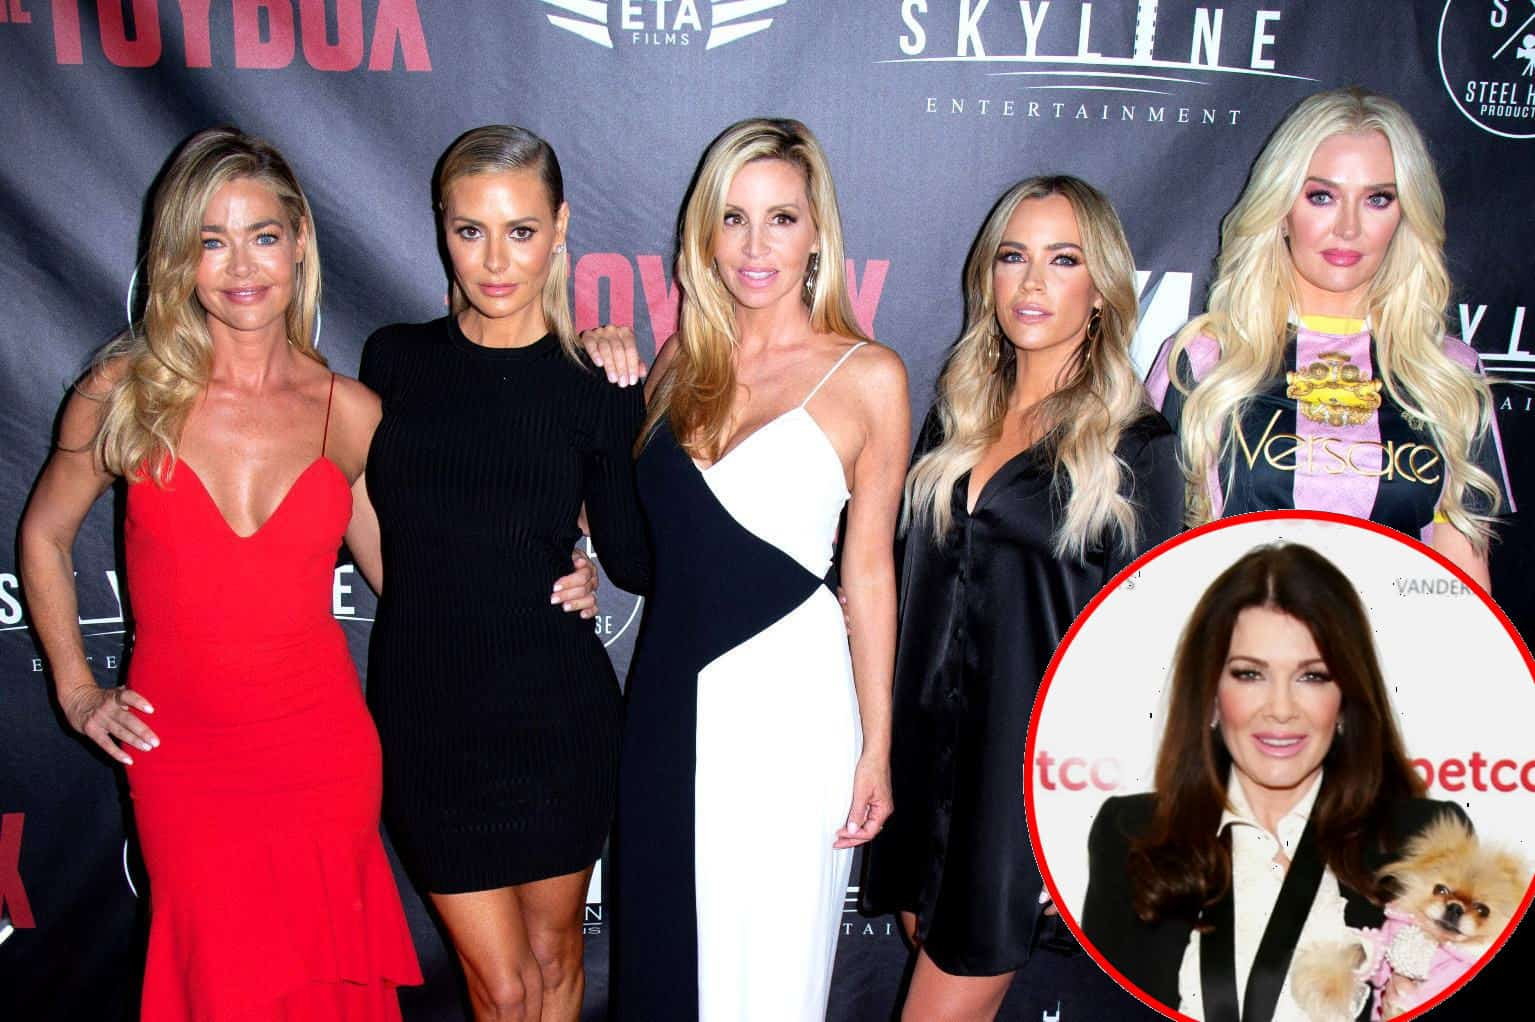 Lisa Vanderpump vs RHOBH Cast